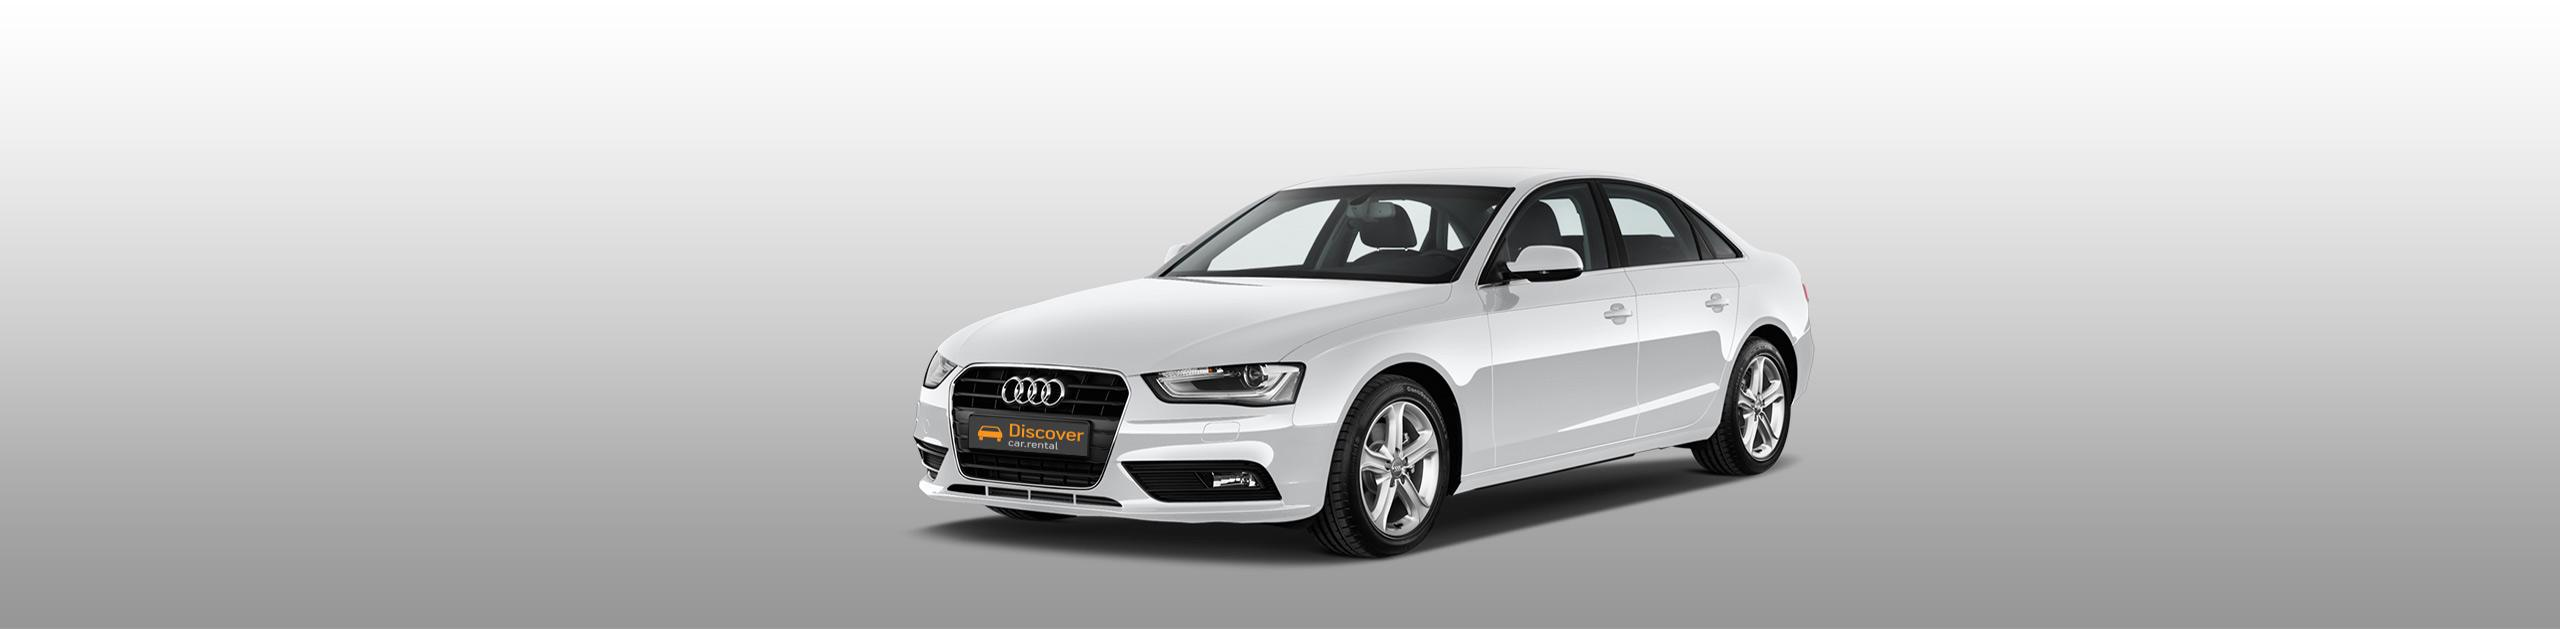 lesvos car rental Audi A4 TFSI